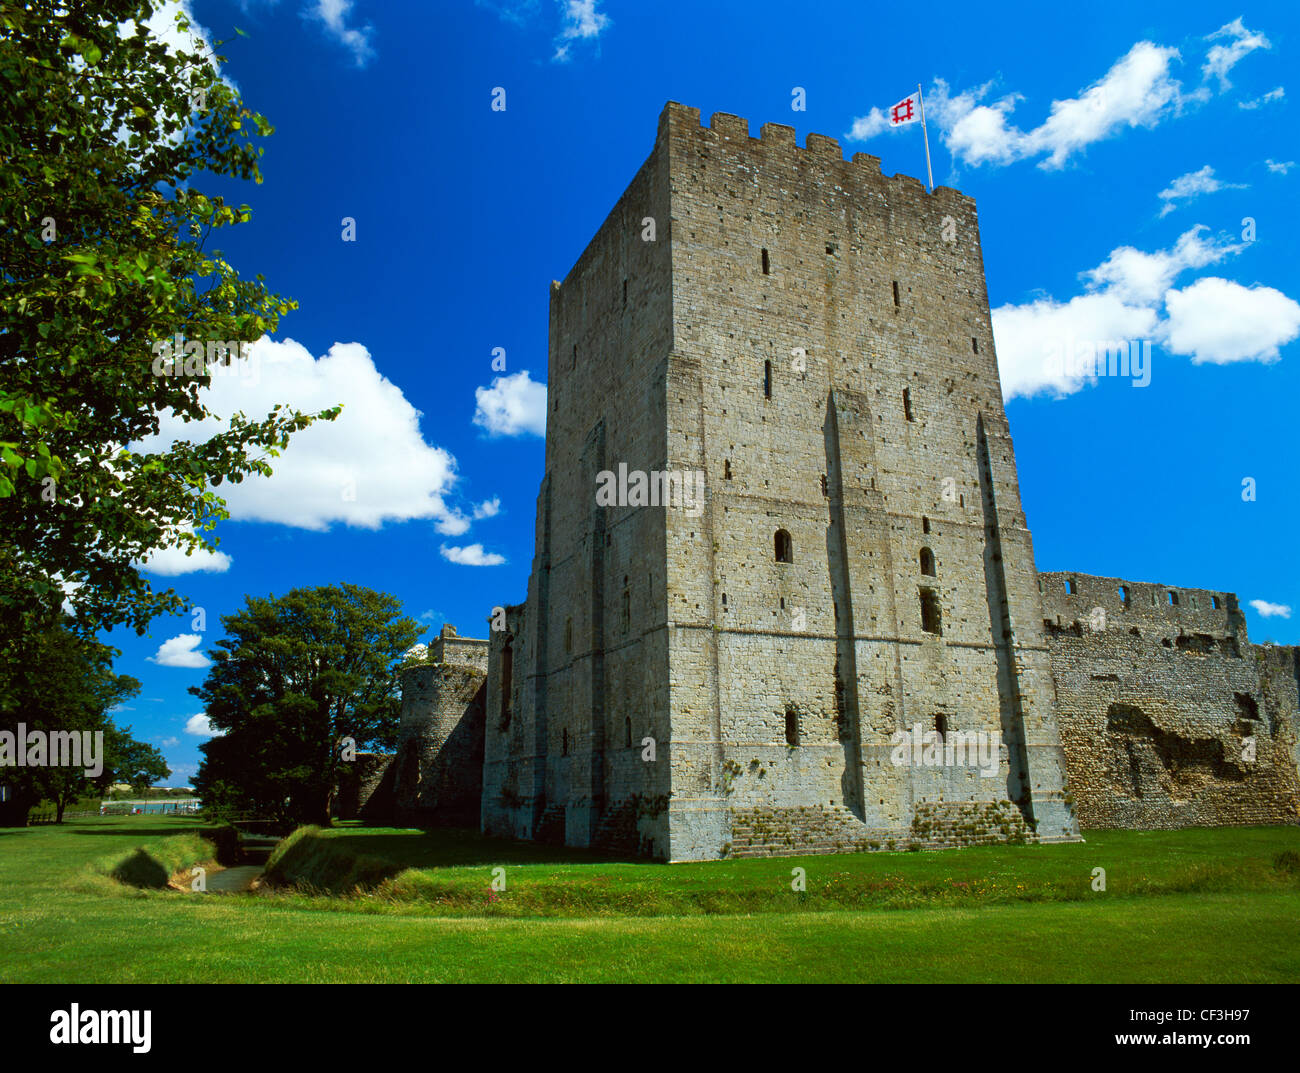 The rectangular Norman keep of Portchester Castle built at the North West corner of the Roman Saxon Shore fort. - Stock Image